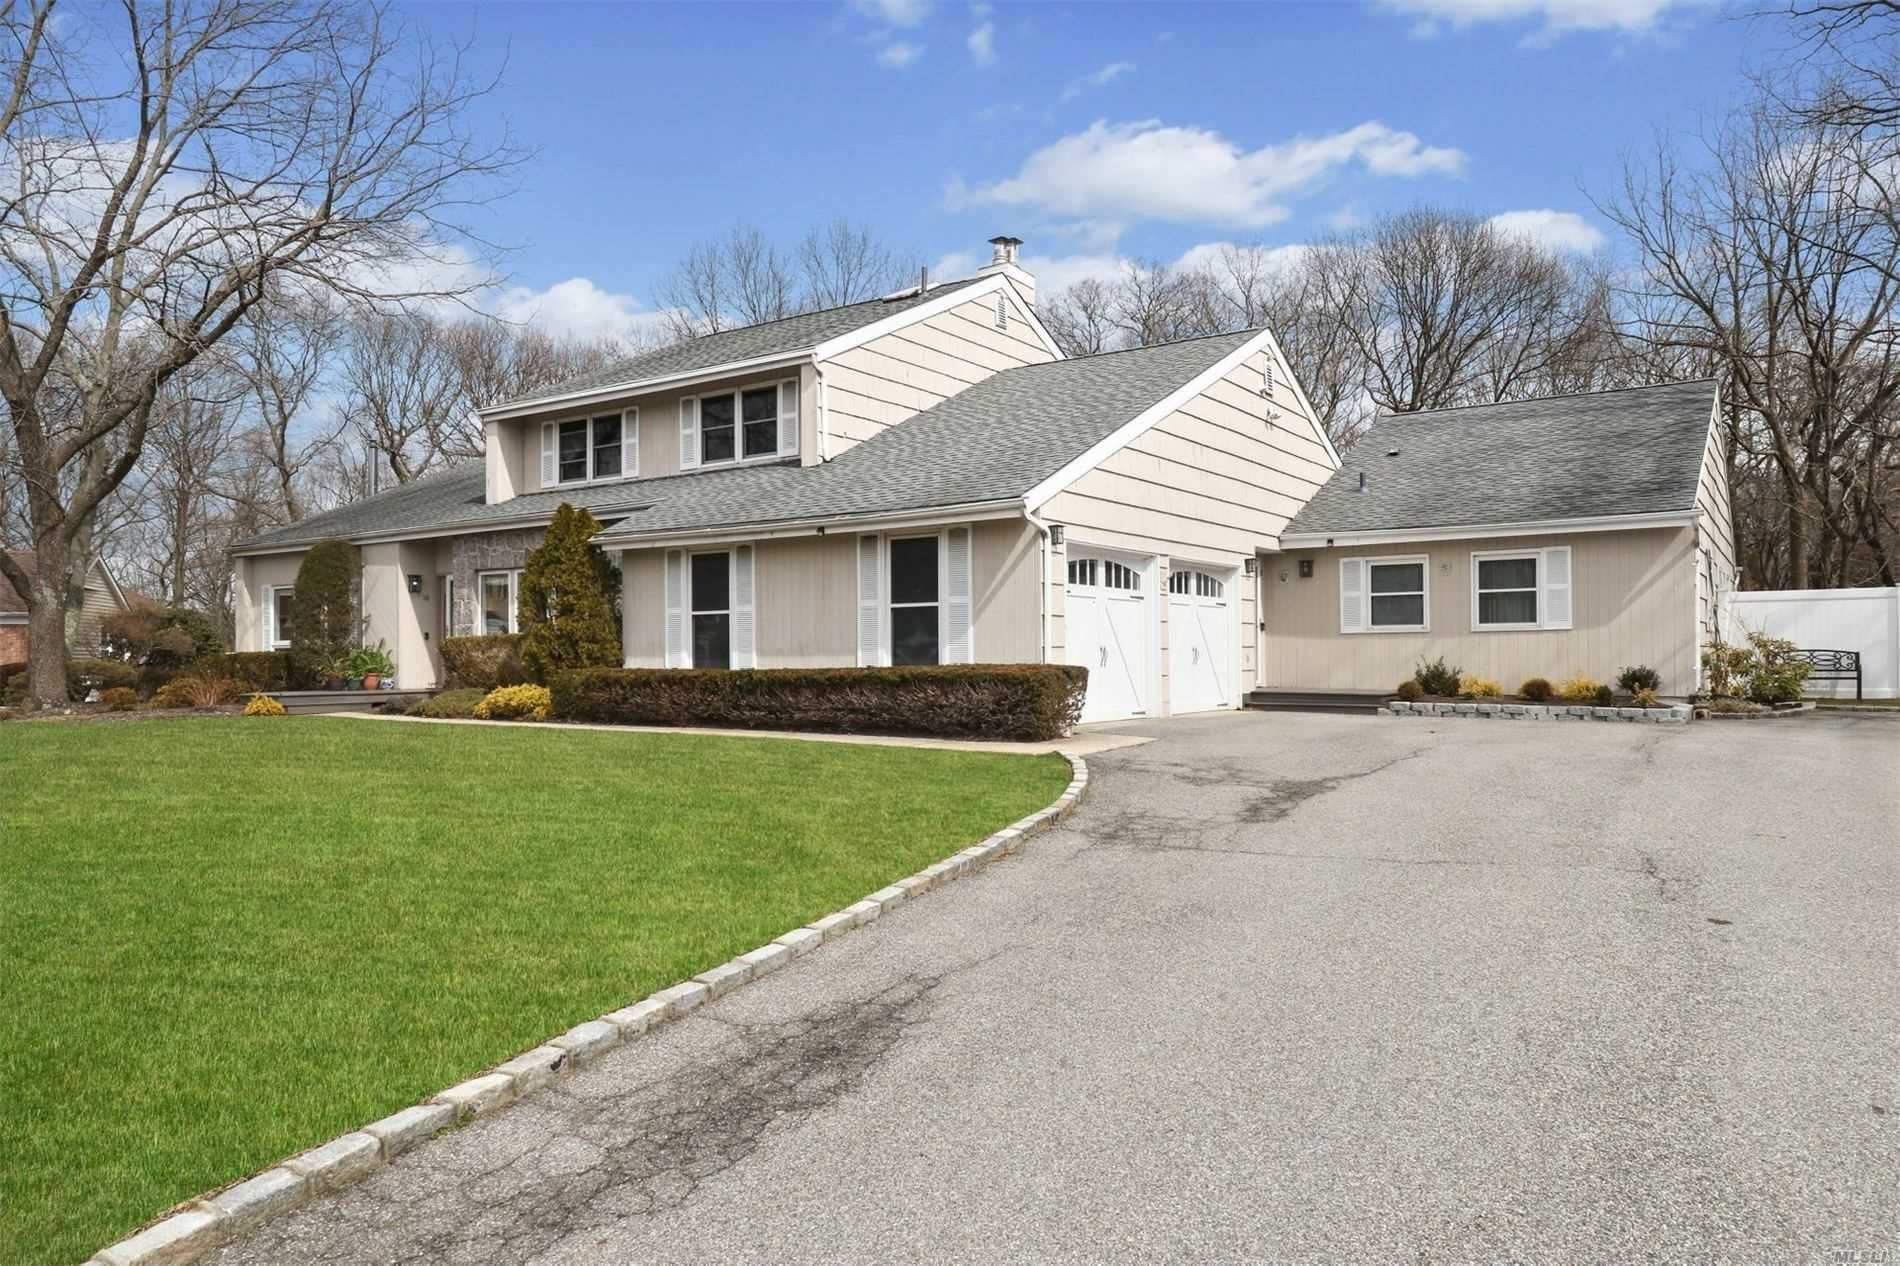 20 Gamay Court, Commack, NY 11725 - MLS#: 3223537